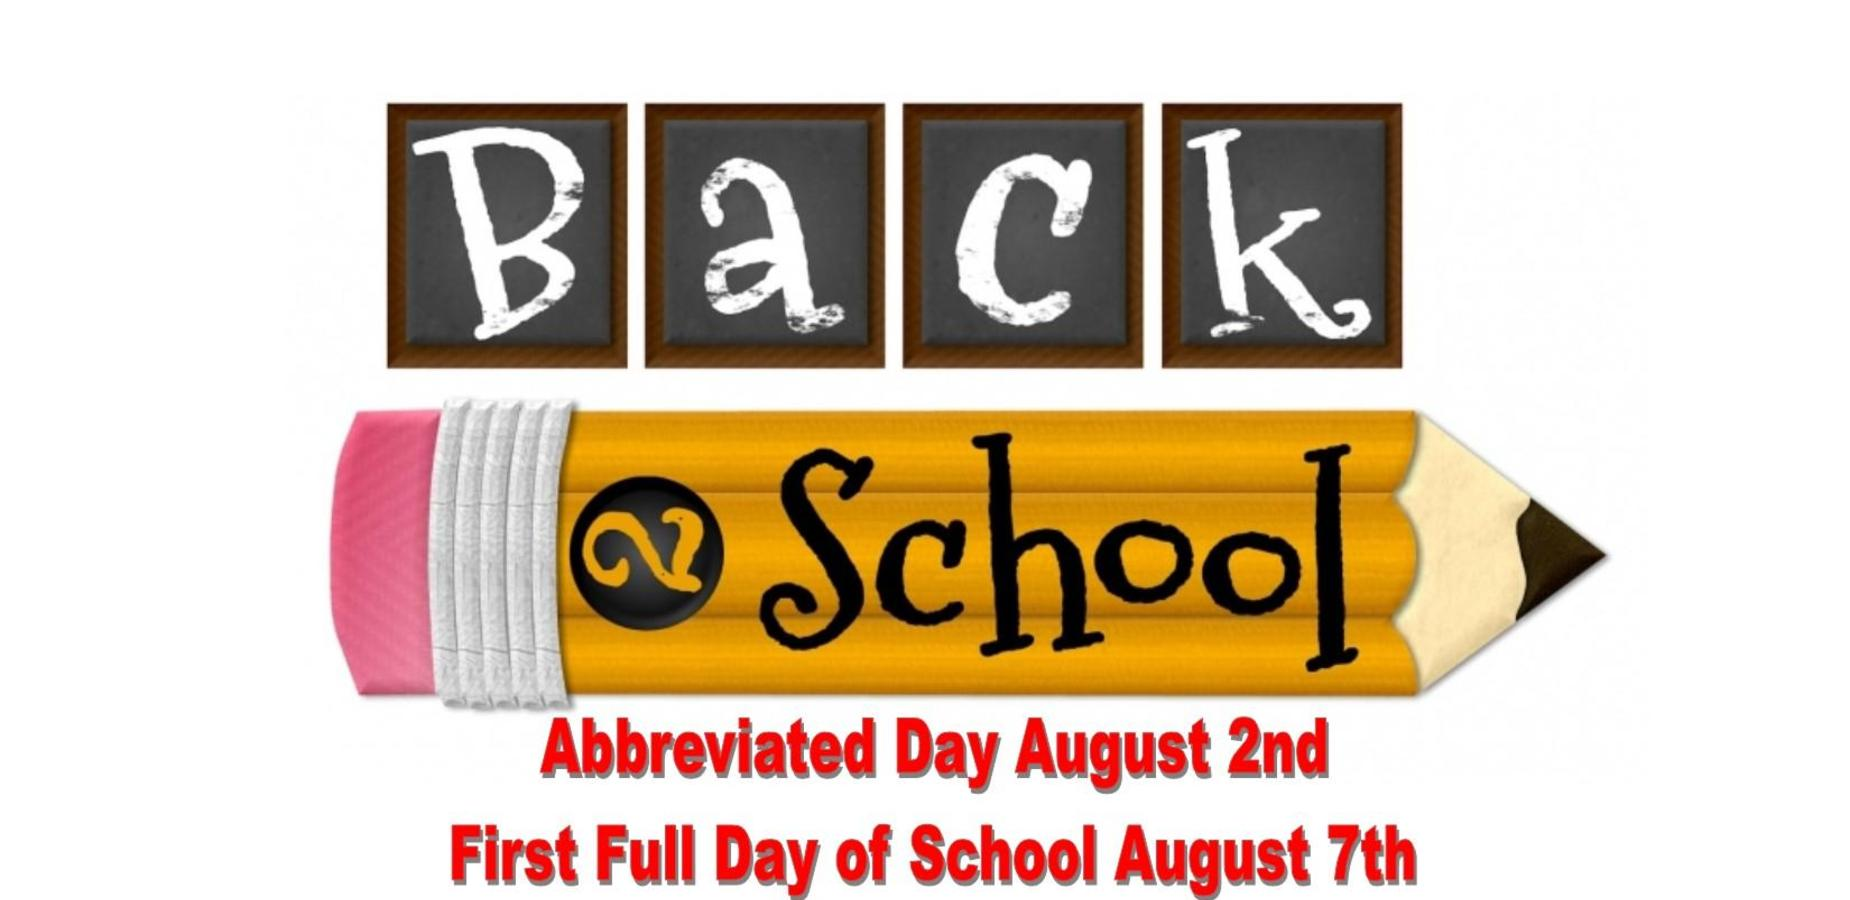 Back to School Abbreviated Day August 2nd First Full Day of School August 7th